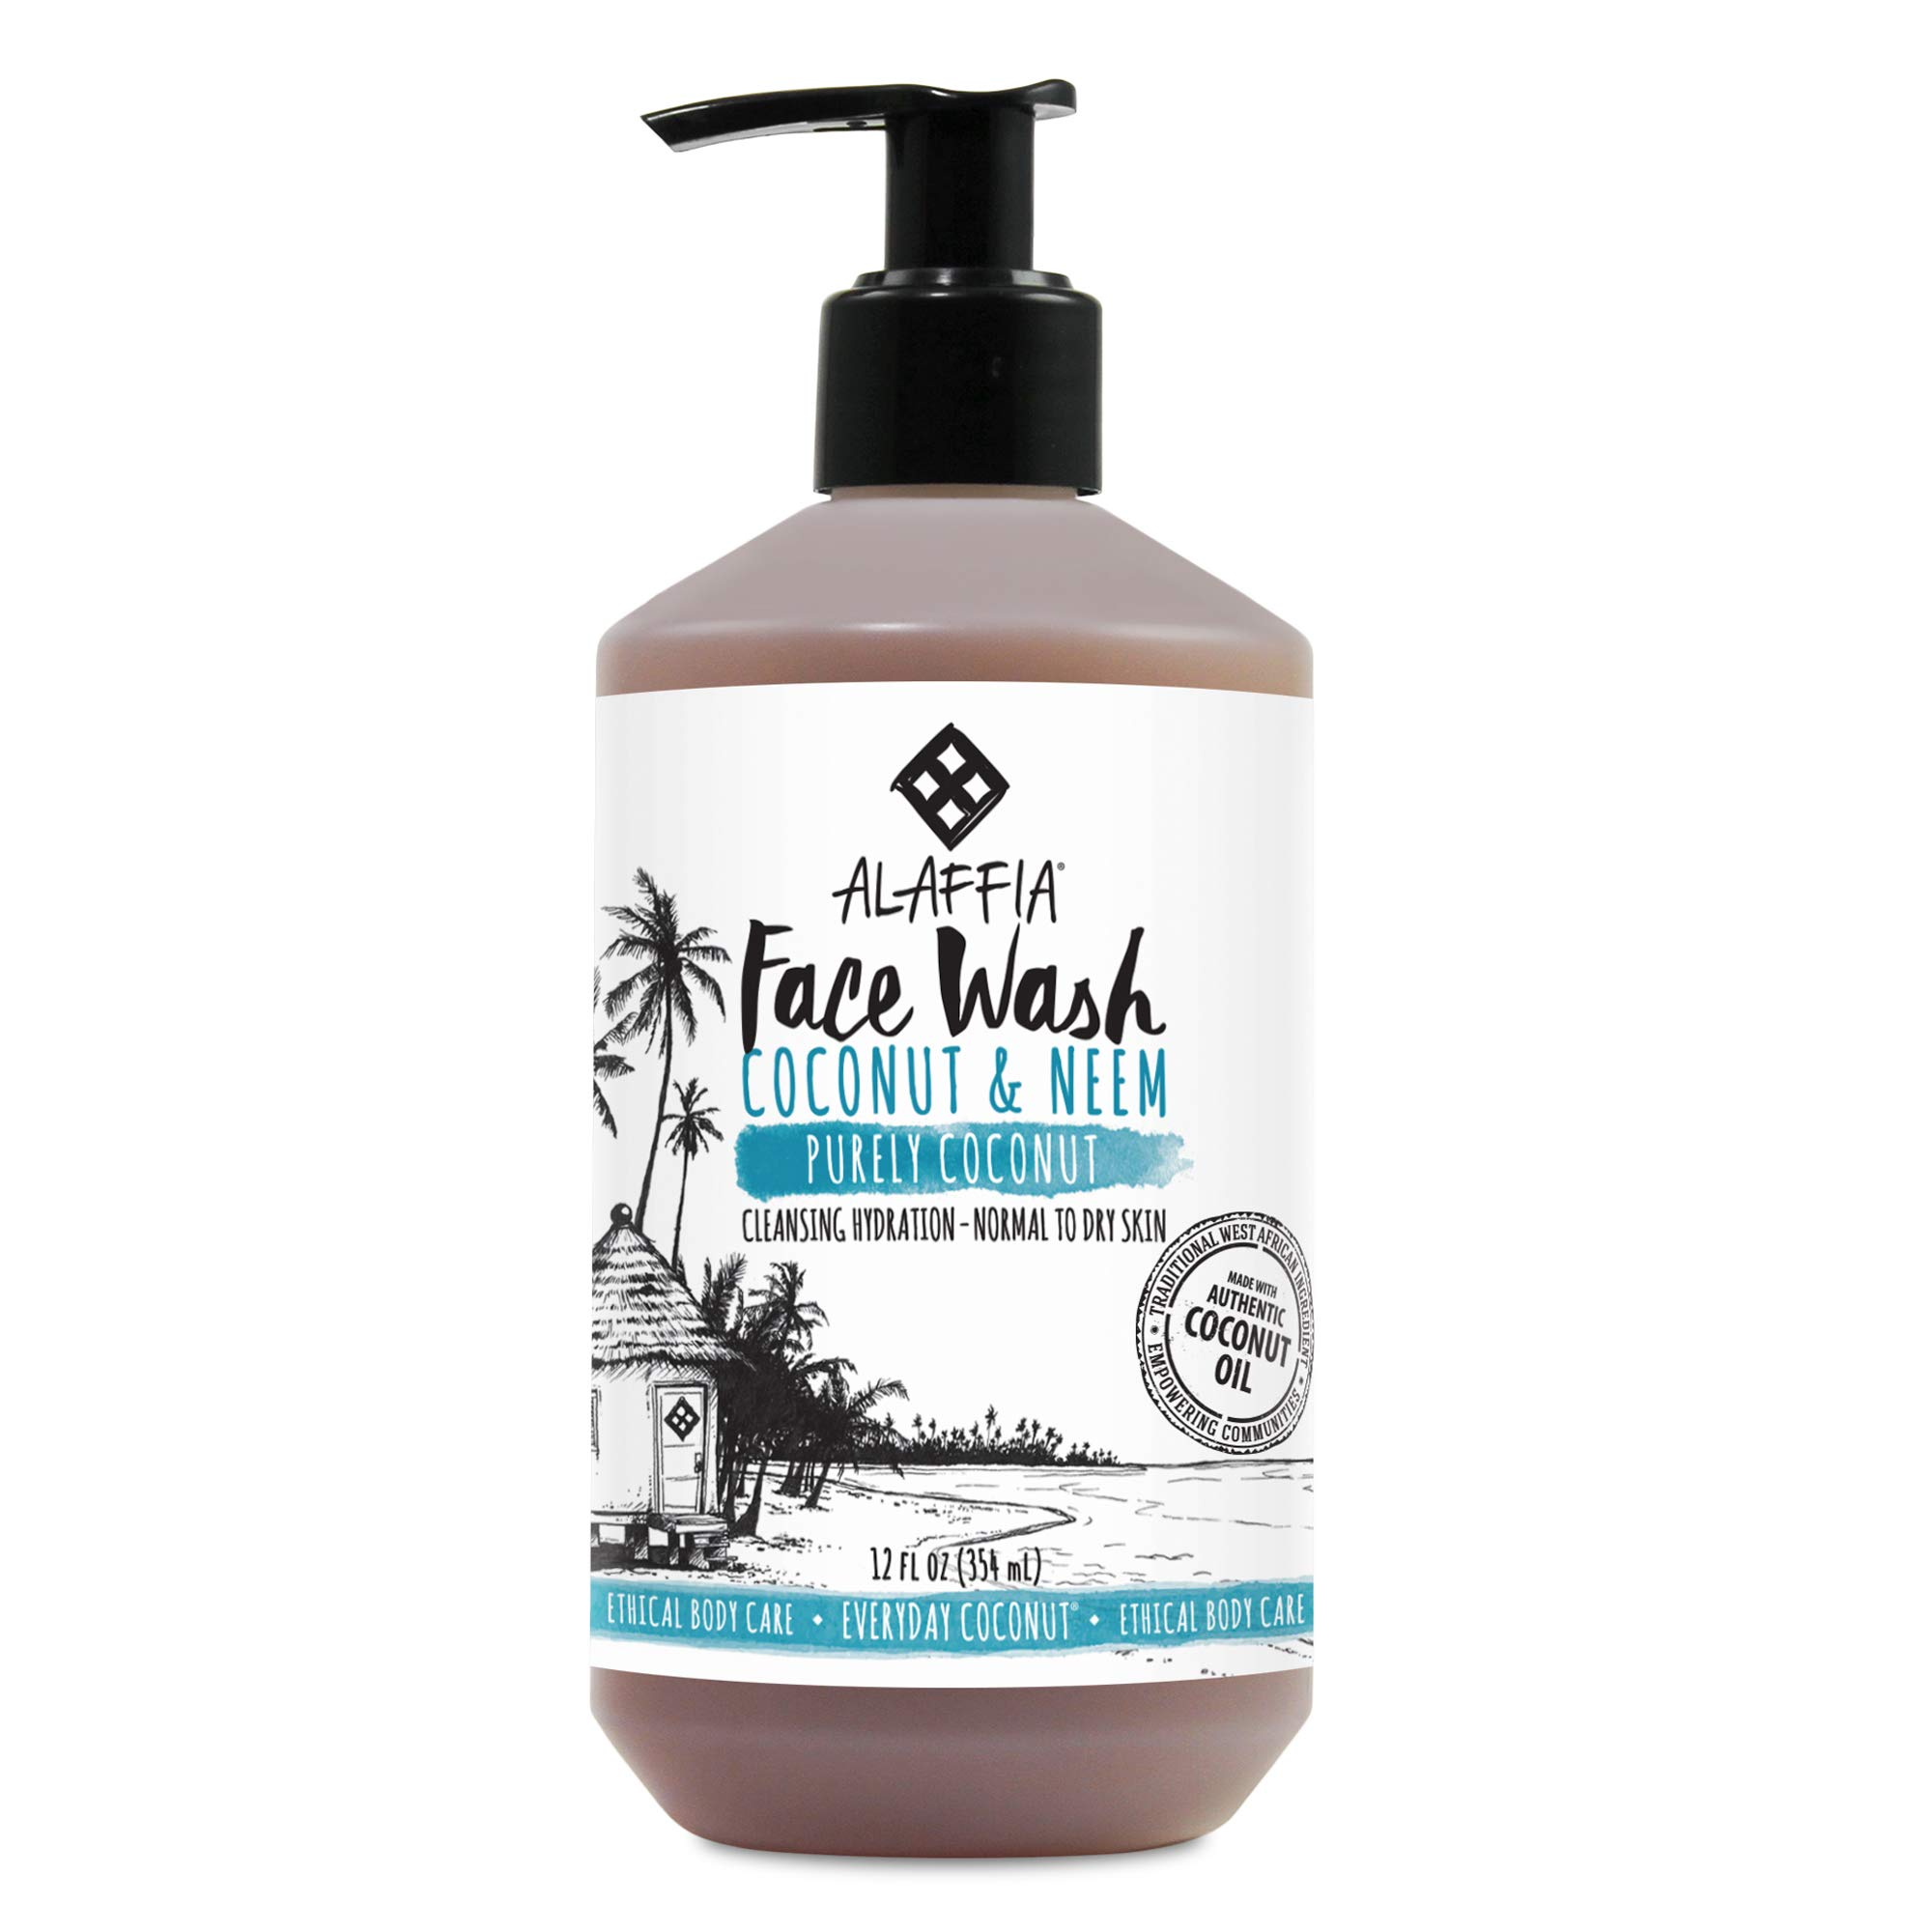 Alaffia - Purely Coconut Face Wash, Normal to Dry Skin, Cleansing Support to Remove Makeup Leaving Skin Fresh and Hydrated with Neem, Lavender Oil, Fair Trade, Coconut and Neem, 12 Ounces (FFP)